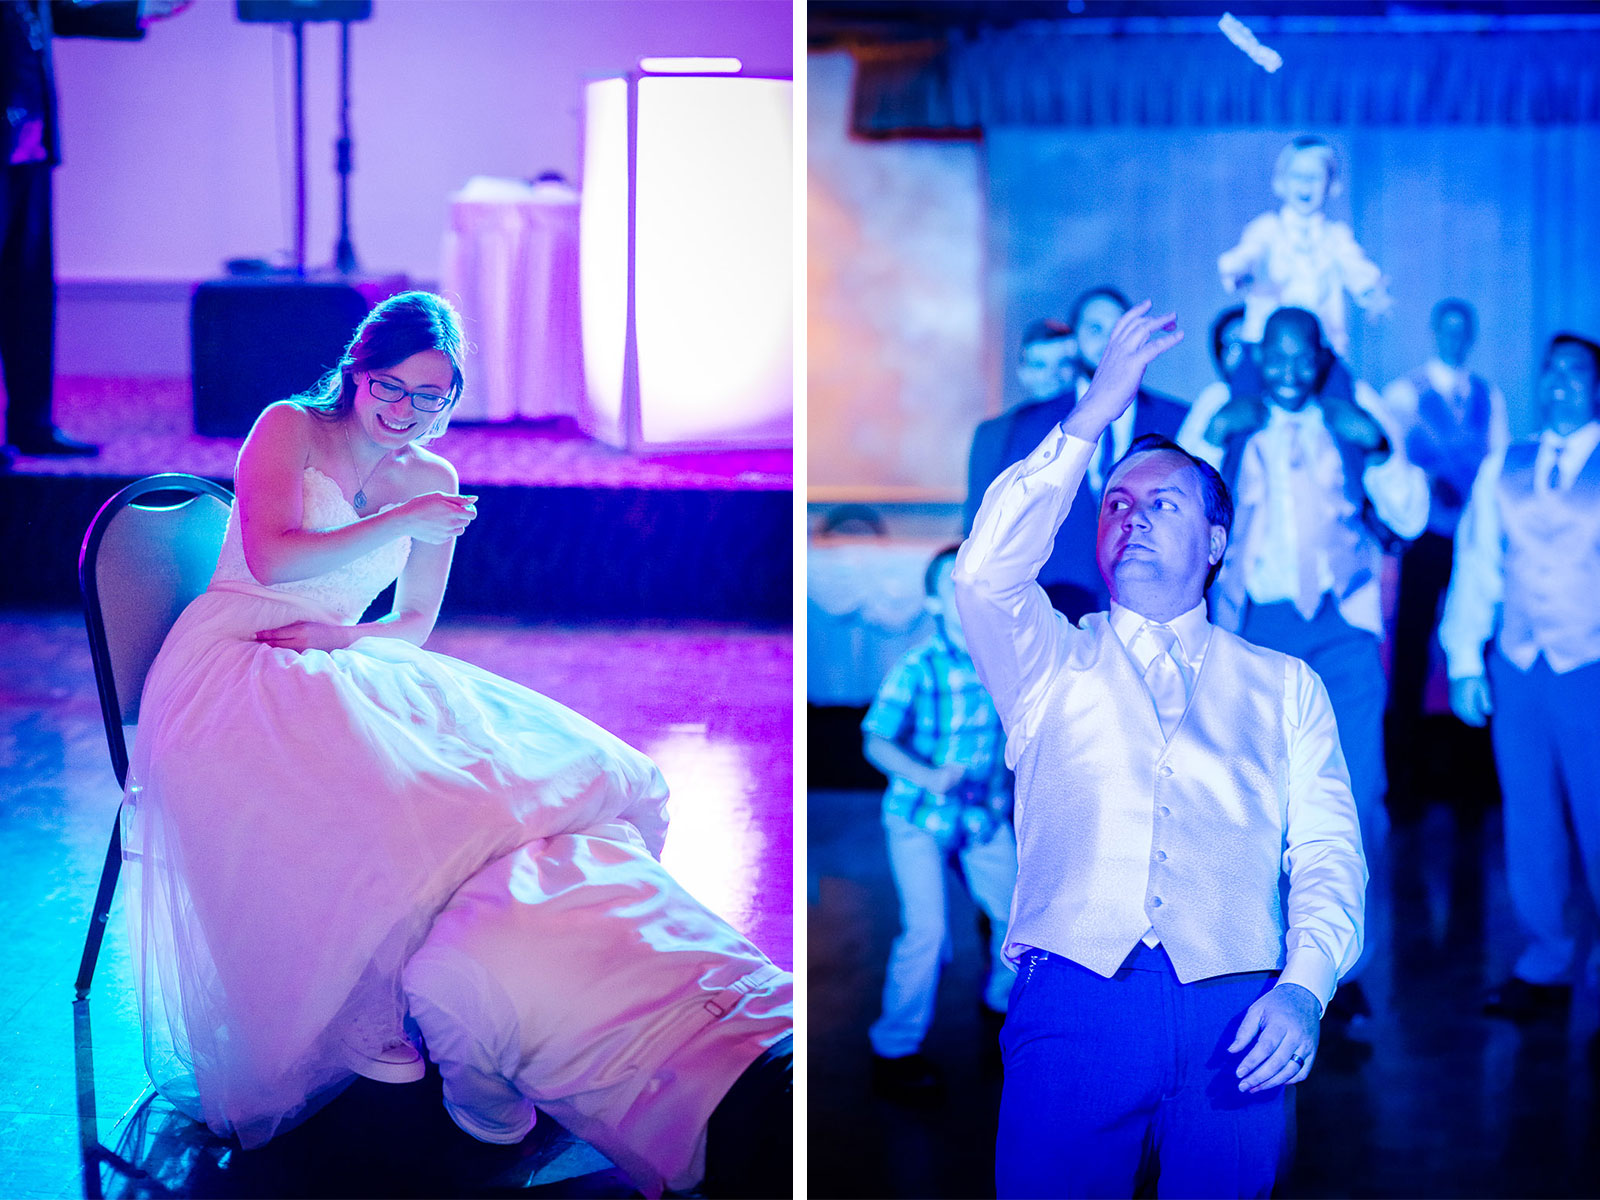 Eric_and_Christy_Photography_Blog_Julie_Adam_Wedding-59-60